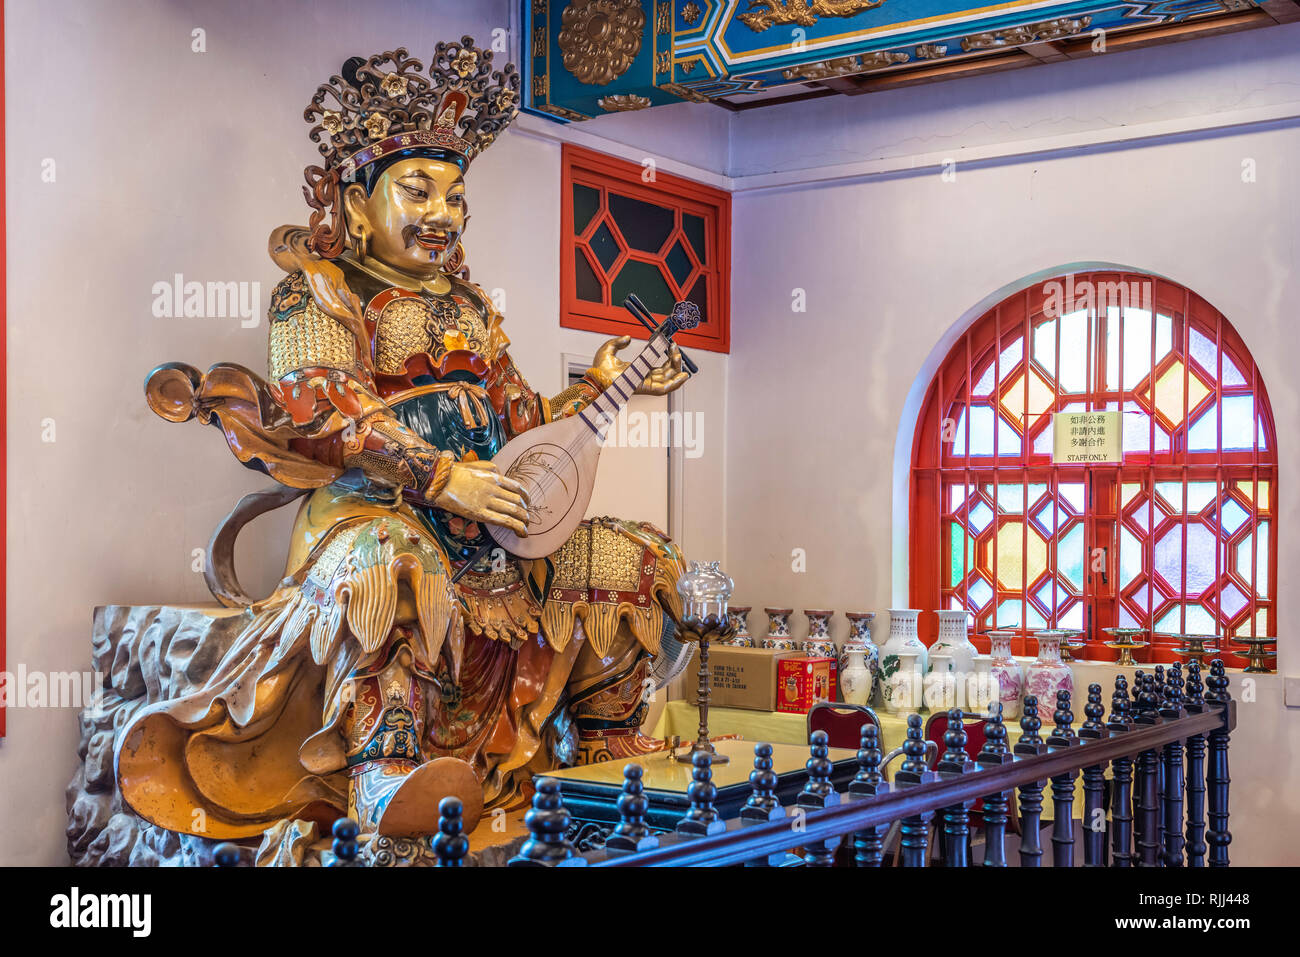 A Buddha god at the Po Lin Monastery on Lantau Island, Hong Kong, China, Asia. - Stock Image